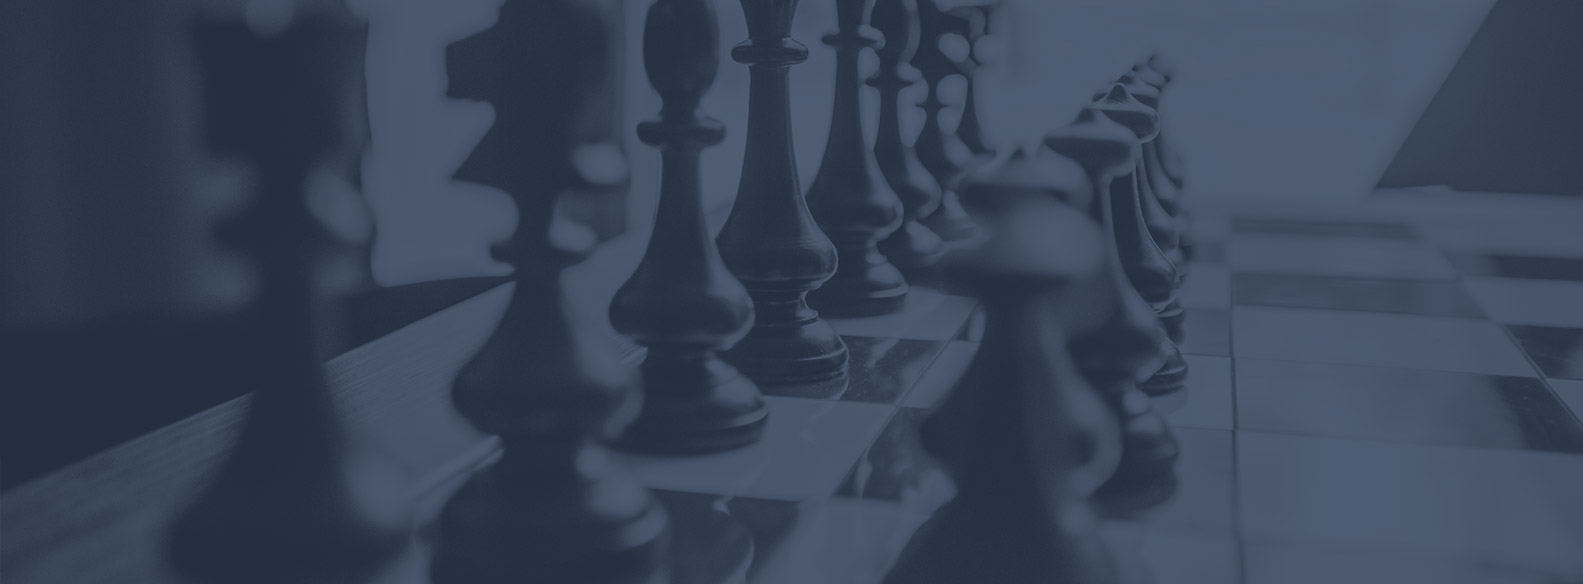 Chess pieces on a chess board representing Protecting your IP through due diligence services from Diligentiam